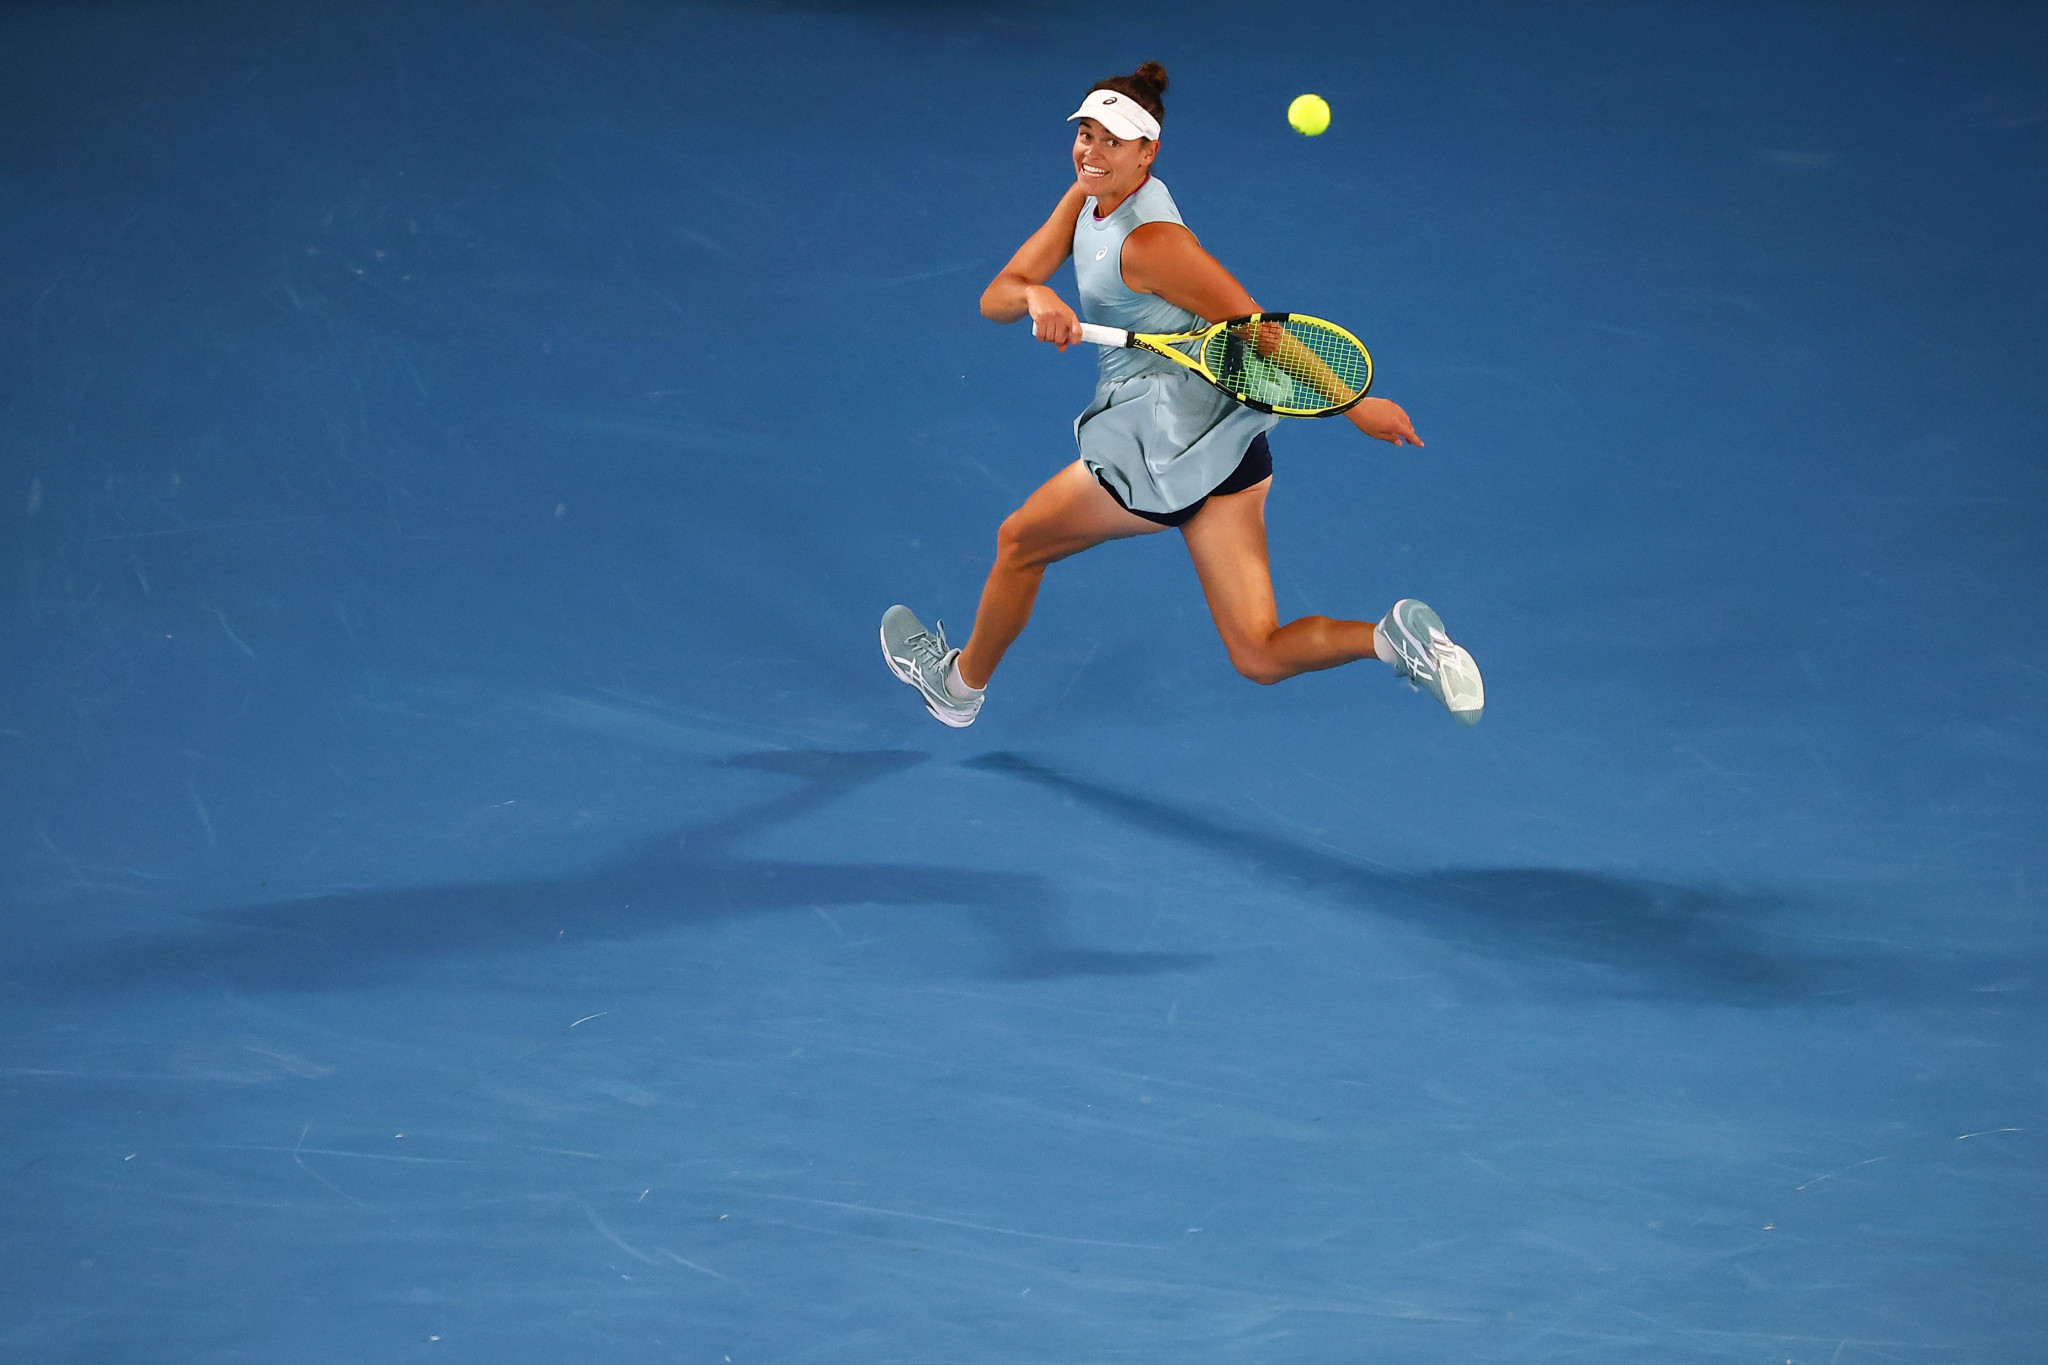 United States Jennifer Brady was appearing in her first Grand Slam final ©Getty Images